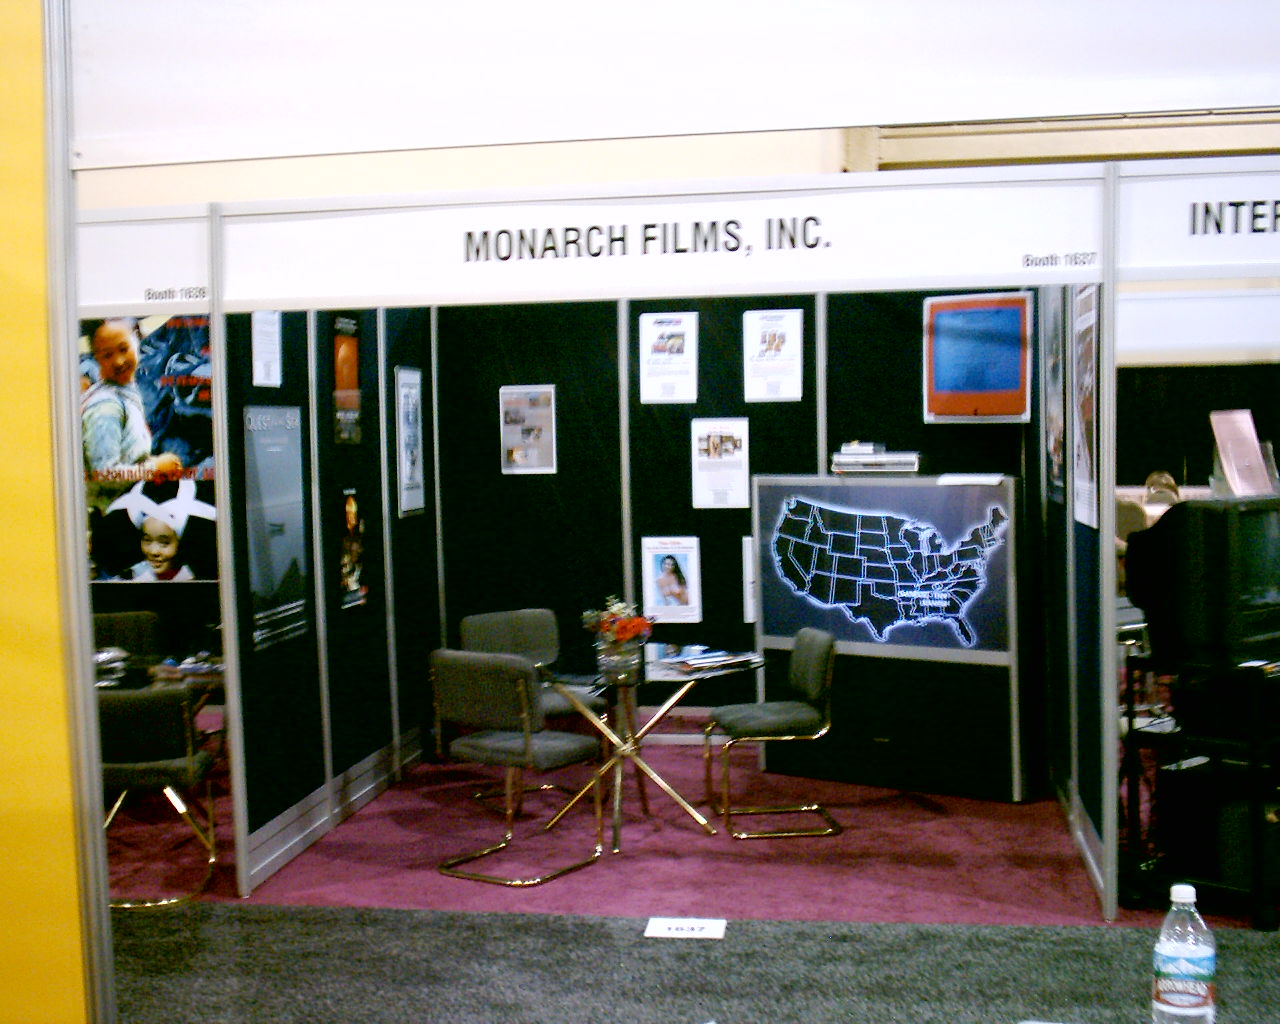 Uploaded Image: /vs-uploads/monarch-at-the-markets/Monarch_Films_Booth_Natpe2005.JPG